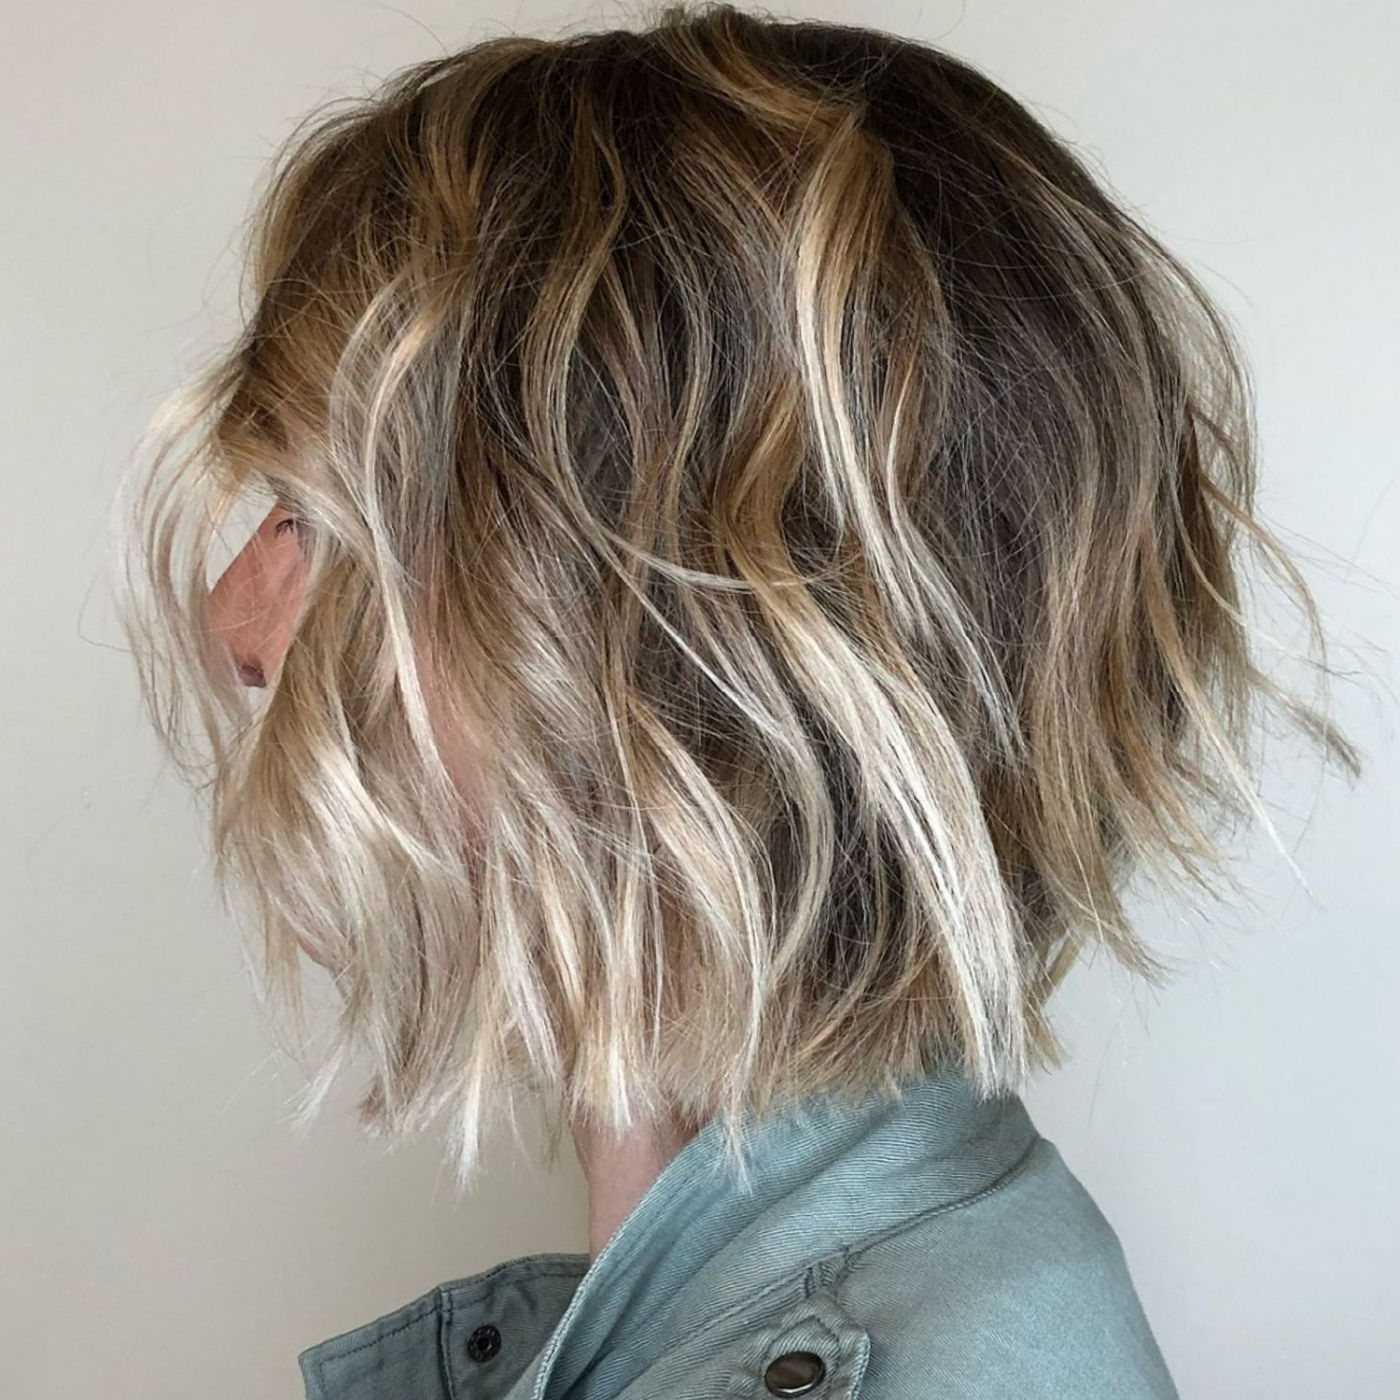 60 Short Shag Hairstyles That You Simply Can't Miss In 2019 With Regard To Bronde Bob Shag Haircuts With Short Back (View 3 of 20)